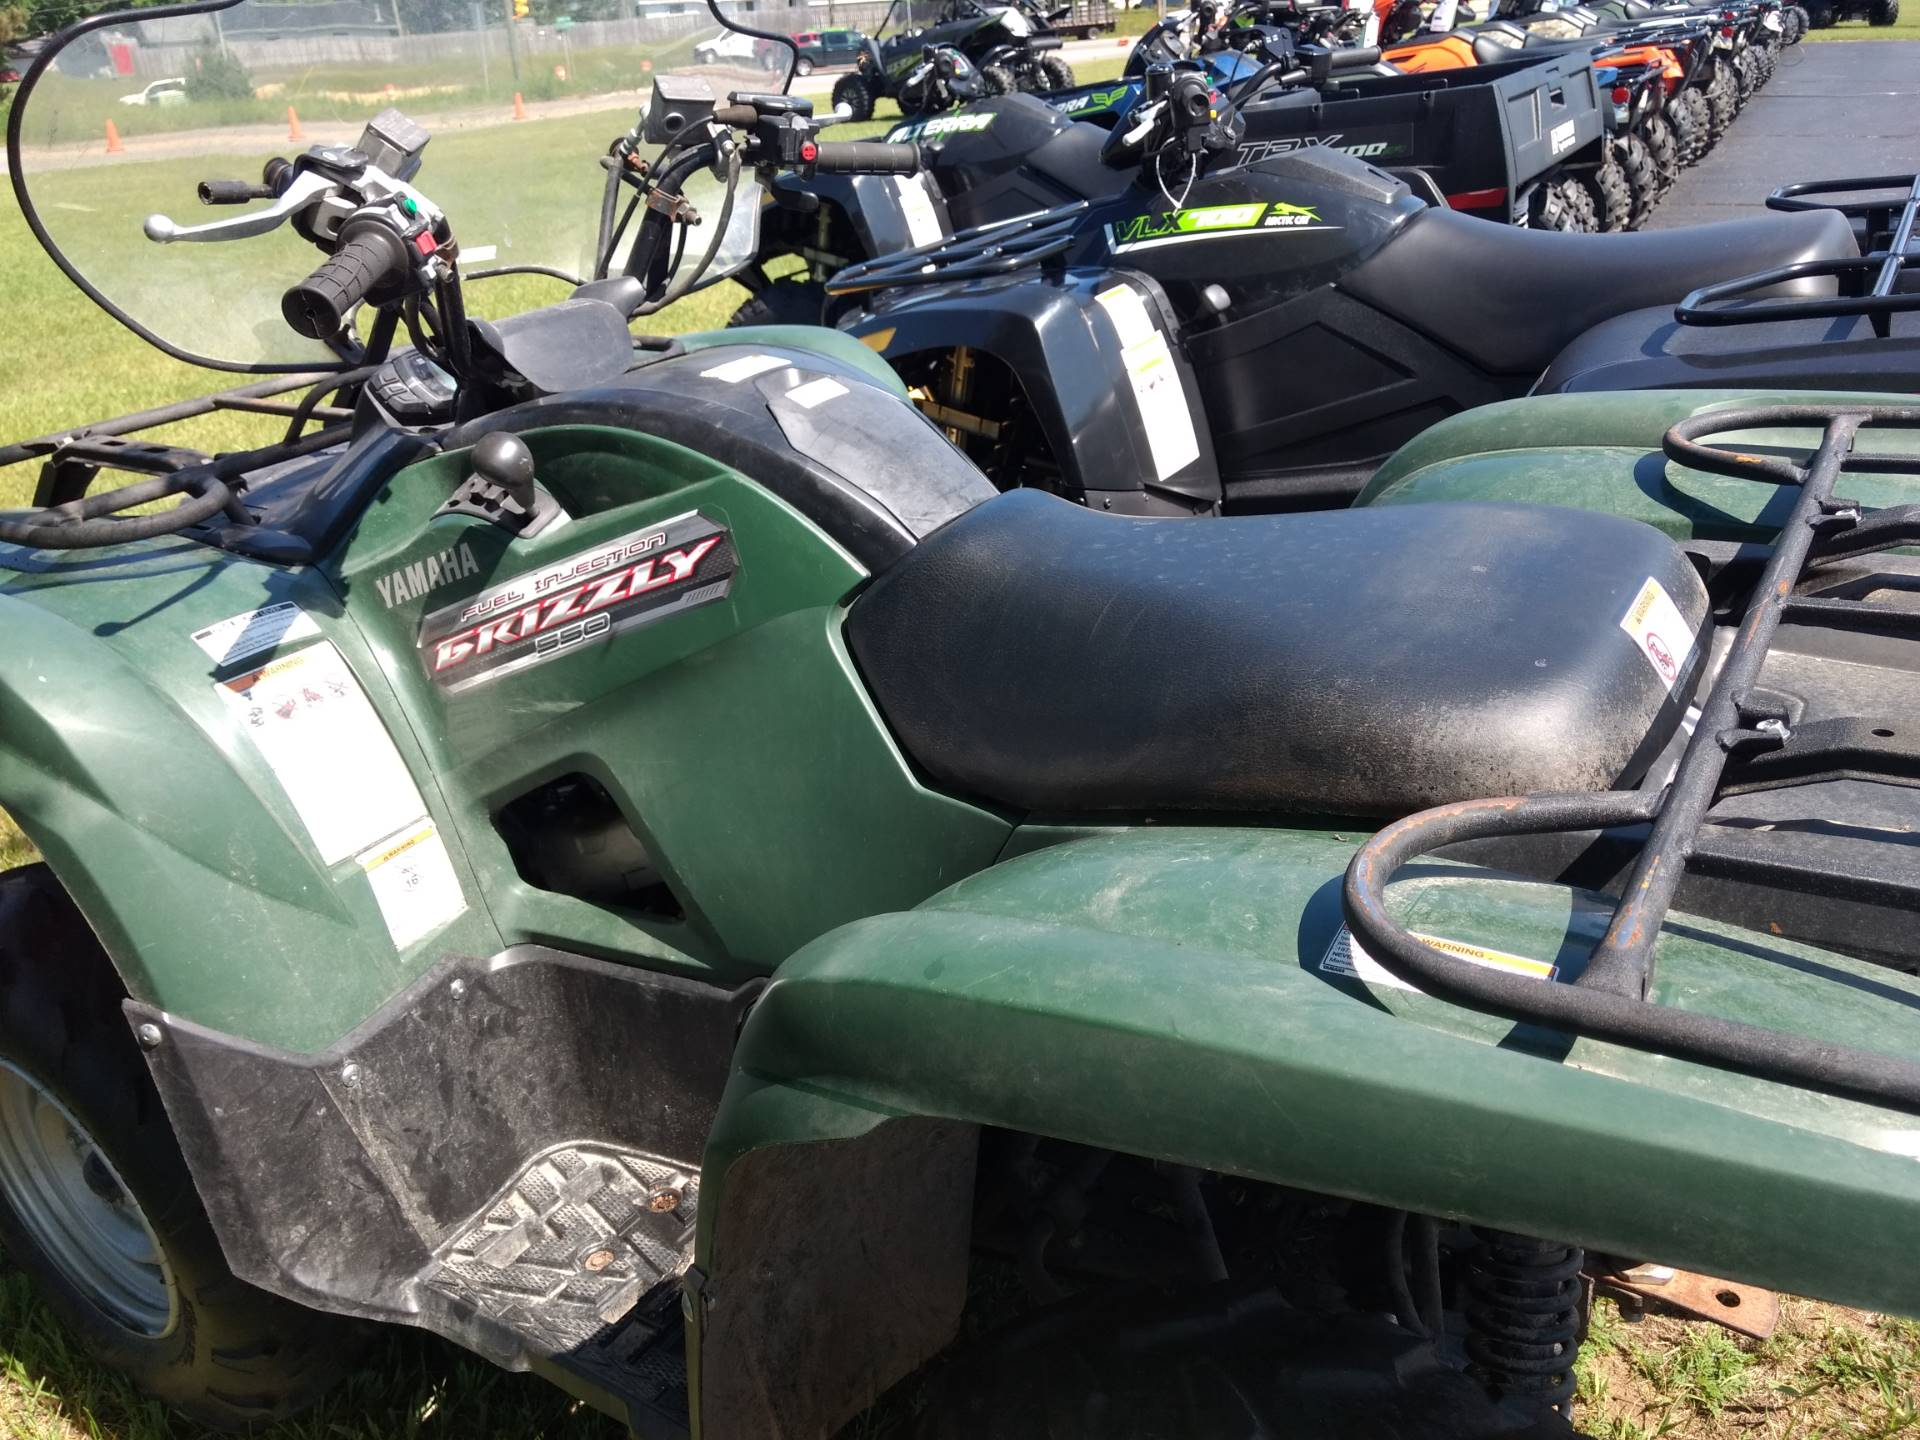 2012 Yamaha Grizzly 550 FI Auto  4x4 in Escanaba, Michigan